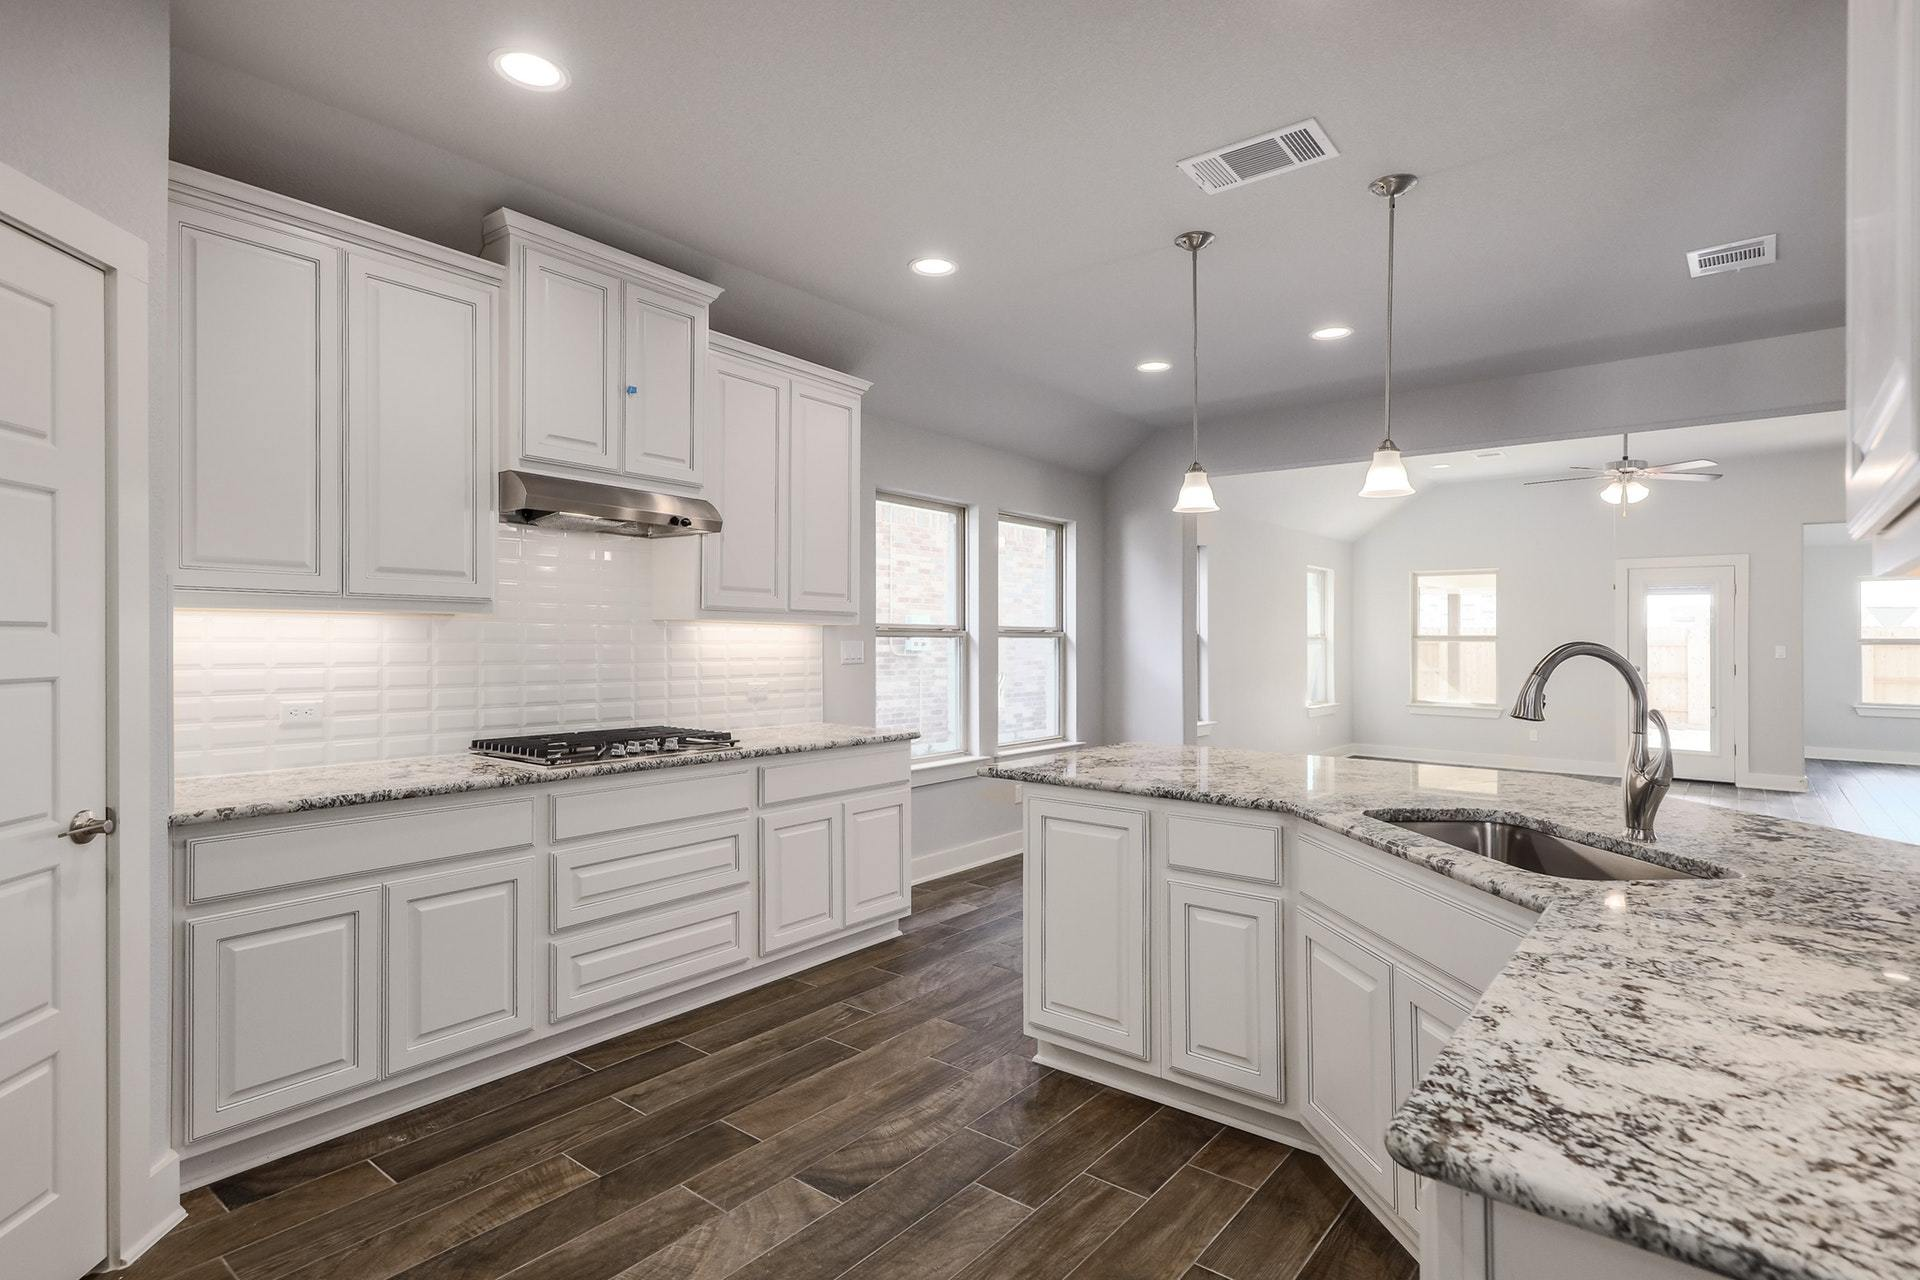 Kitchen featured in the Georgetown By Empire Communities in Austin, TX